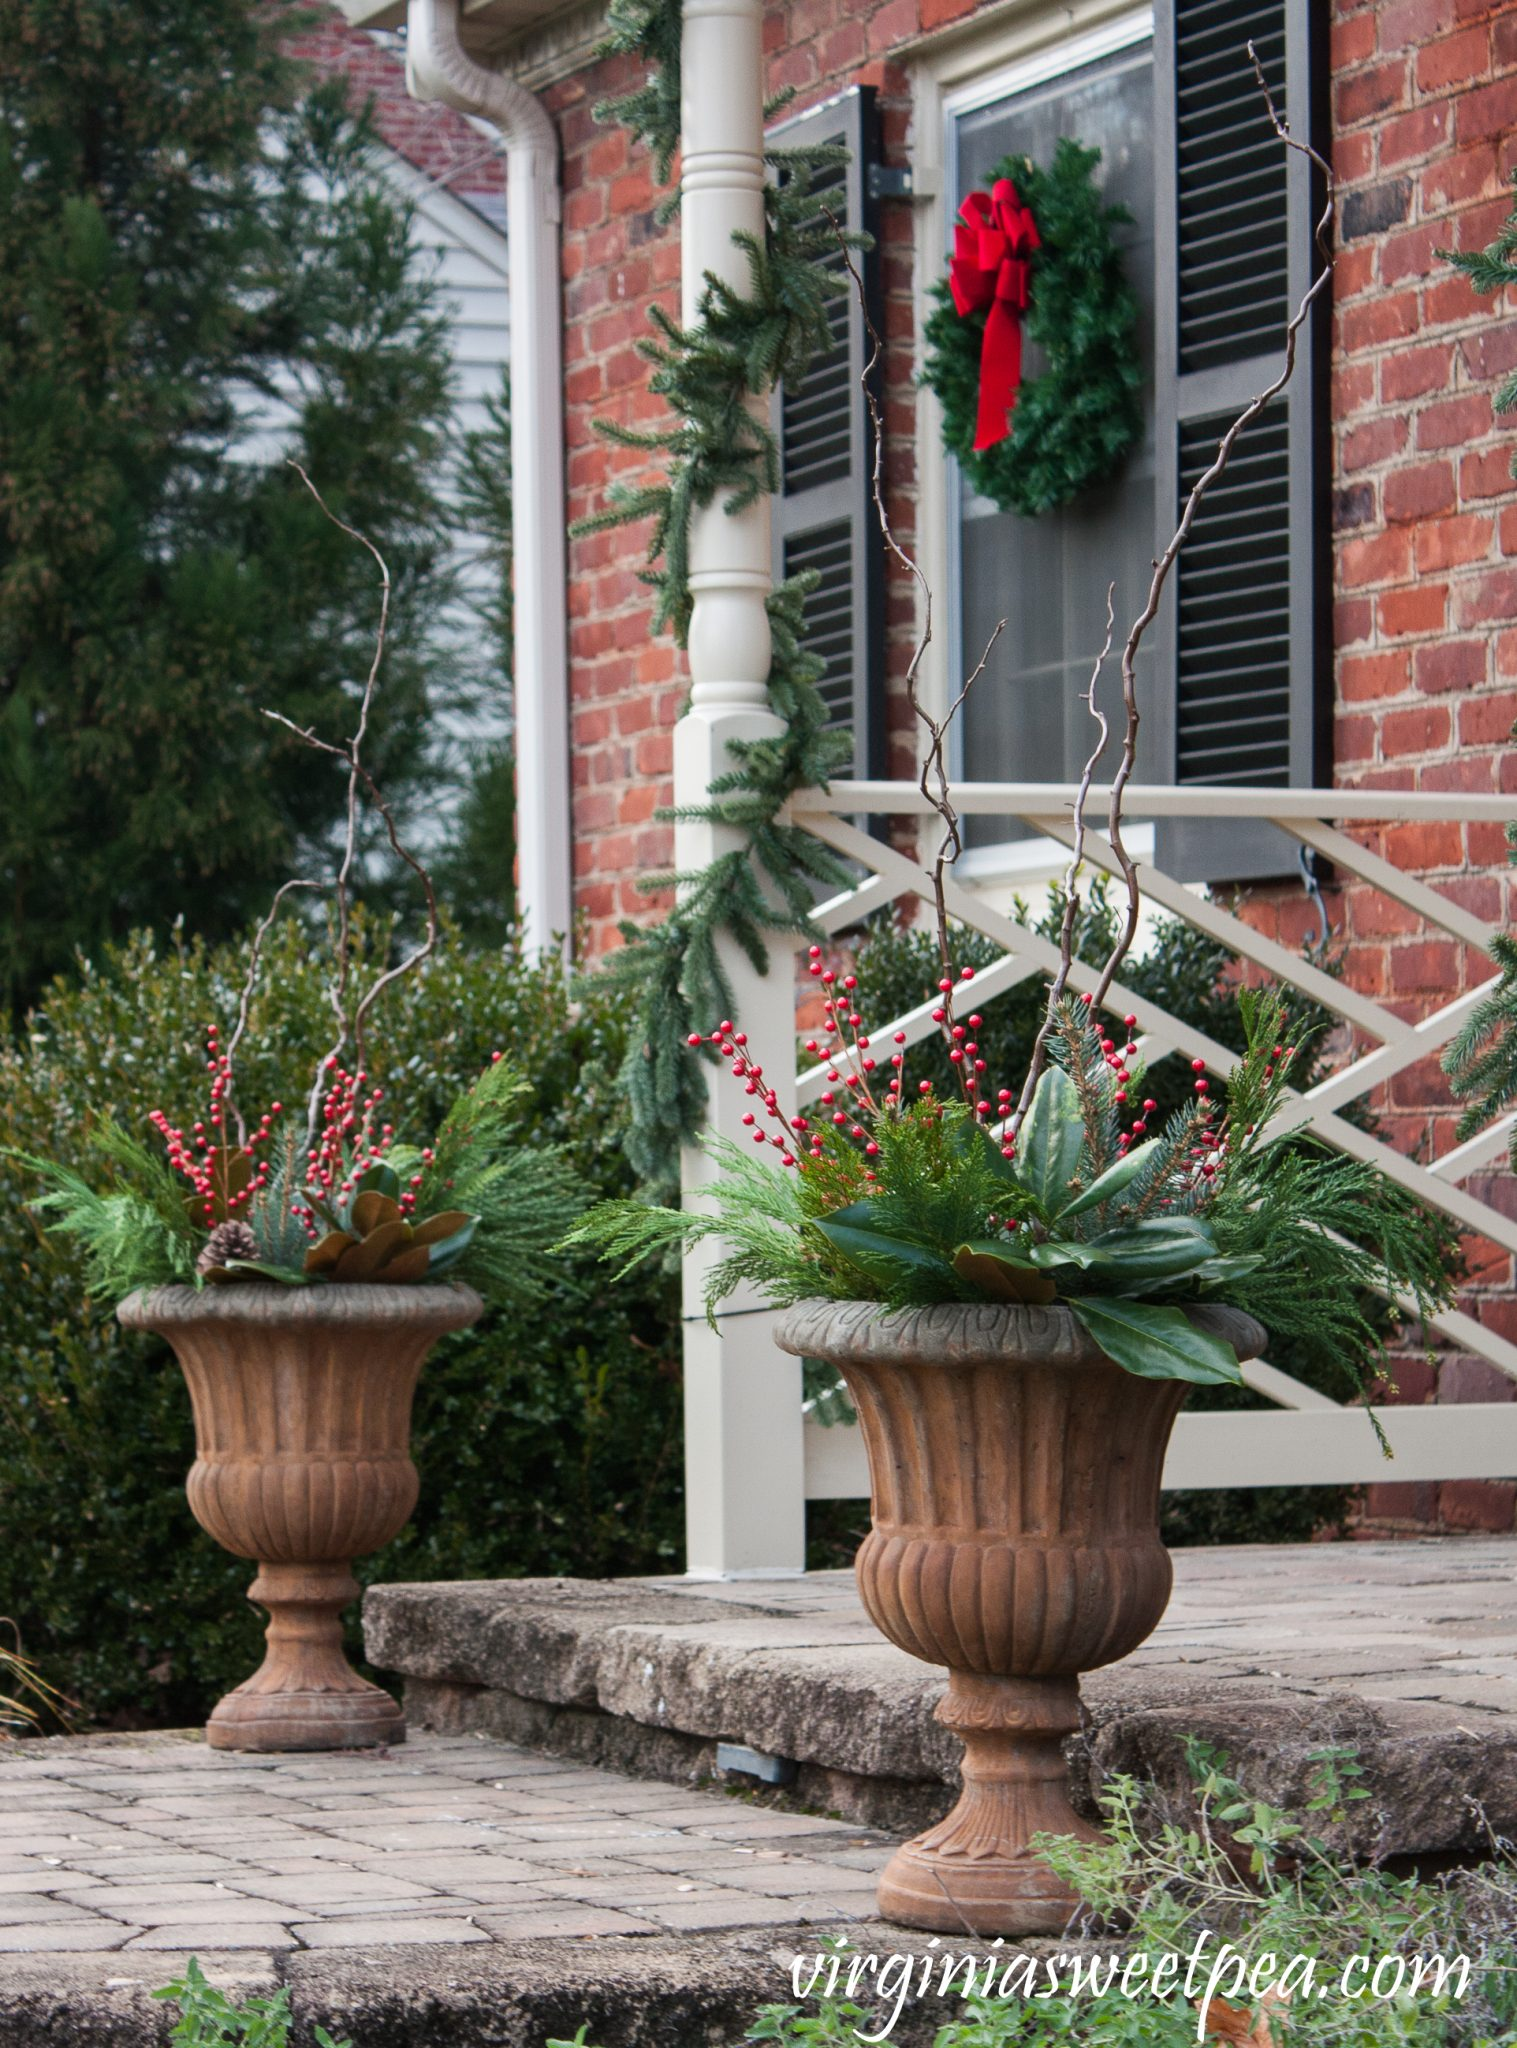 Front porch urns decorated with fresh greenery, curly willow branches and faux berries.